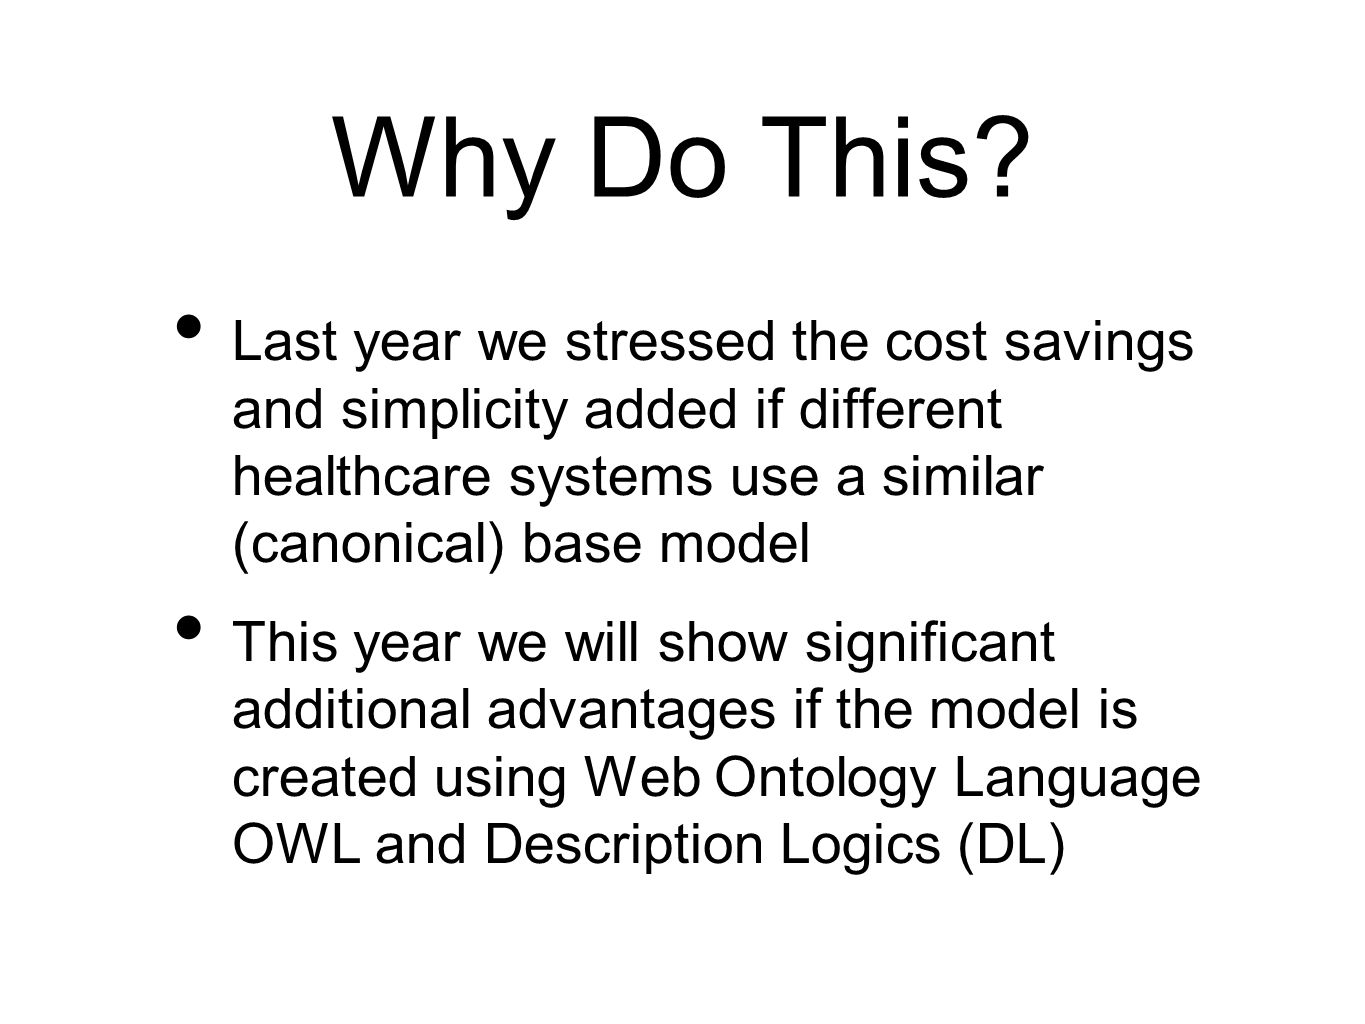 Why Do This Last year we stressed the cost savings and simplicity added if different healthcare systems use a similar (canonical) base model.